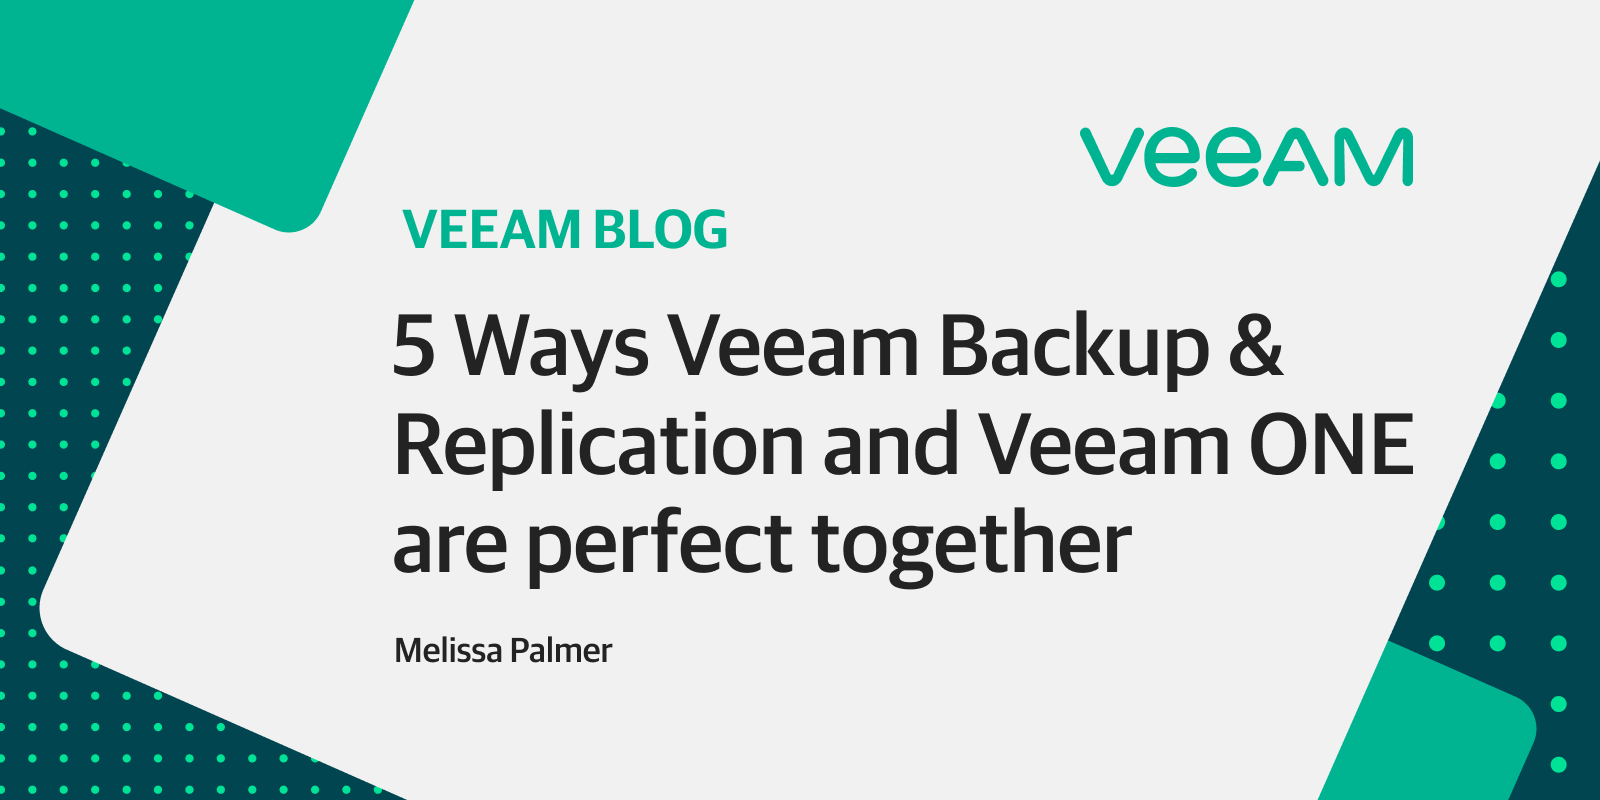 5 Ways Veeam Back-up & Replication and Veeam ONE together are ideal